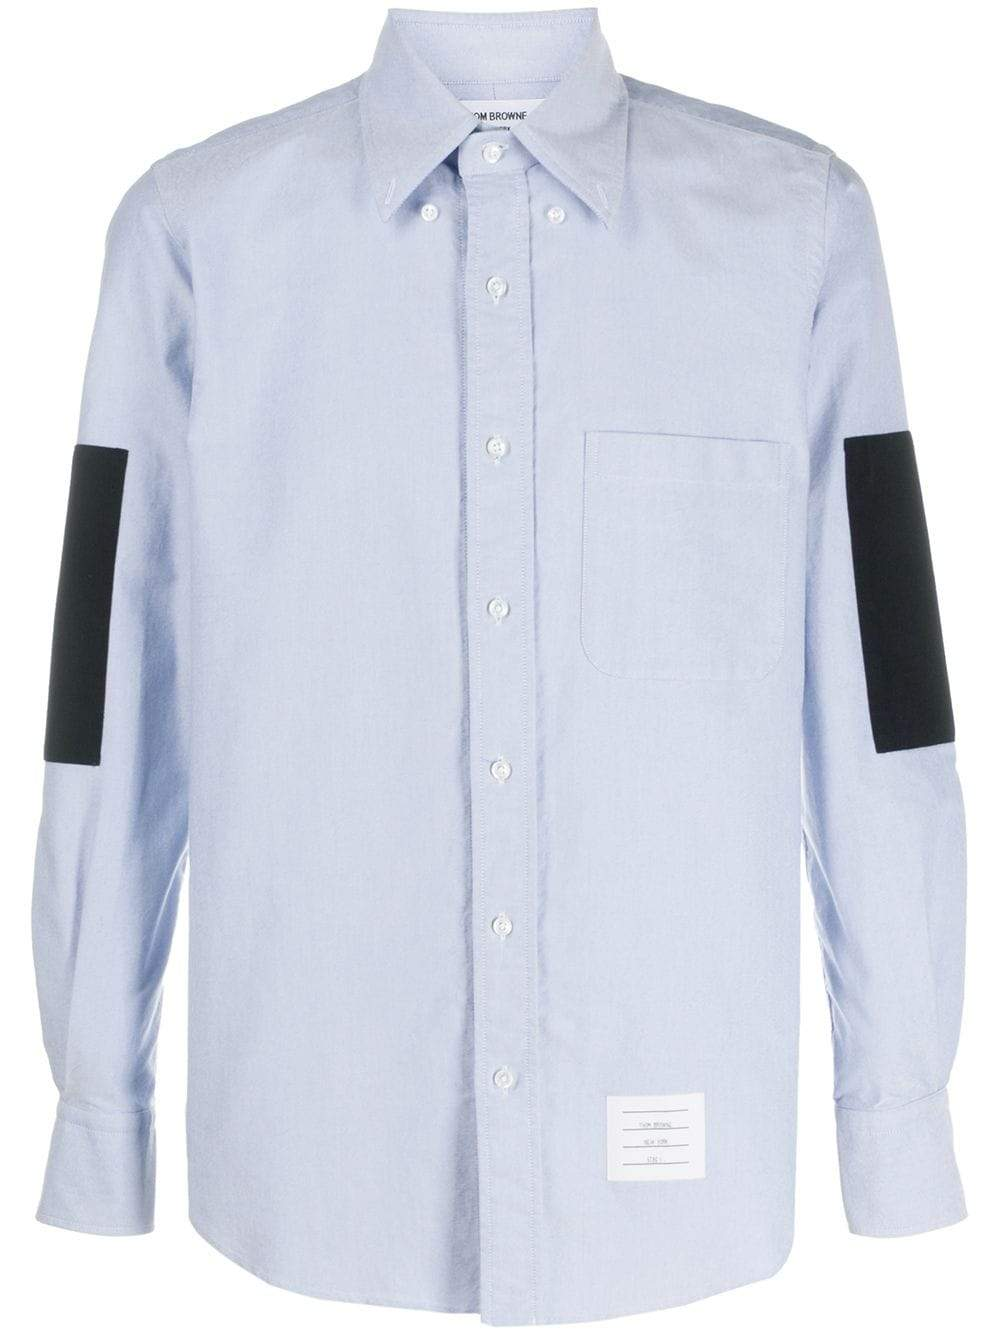 You can never have too many shirts. Which is exactly why this light blue elbow patch shirt from Thom